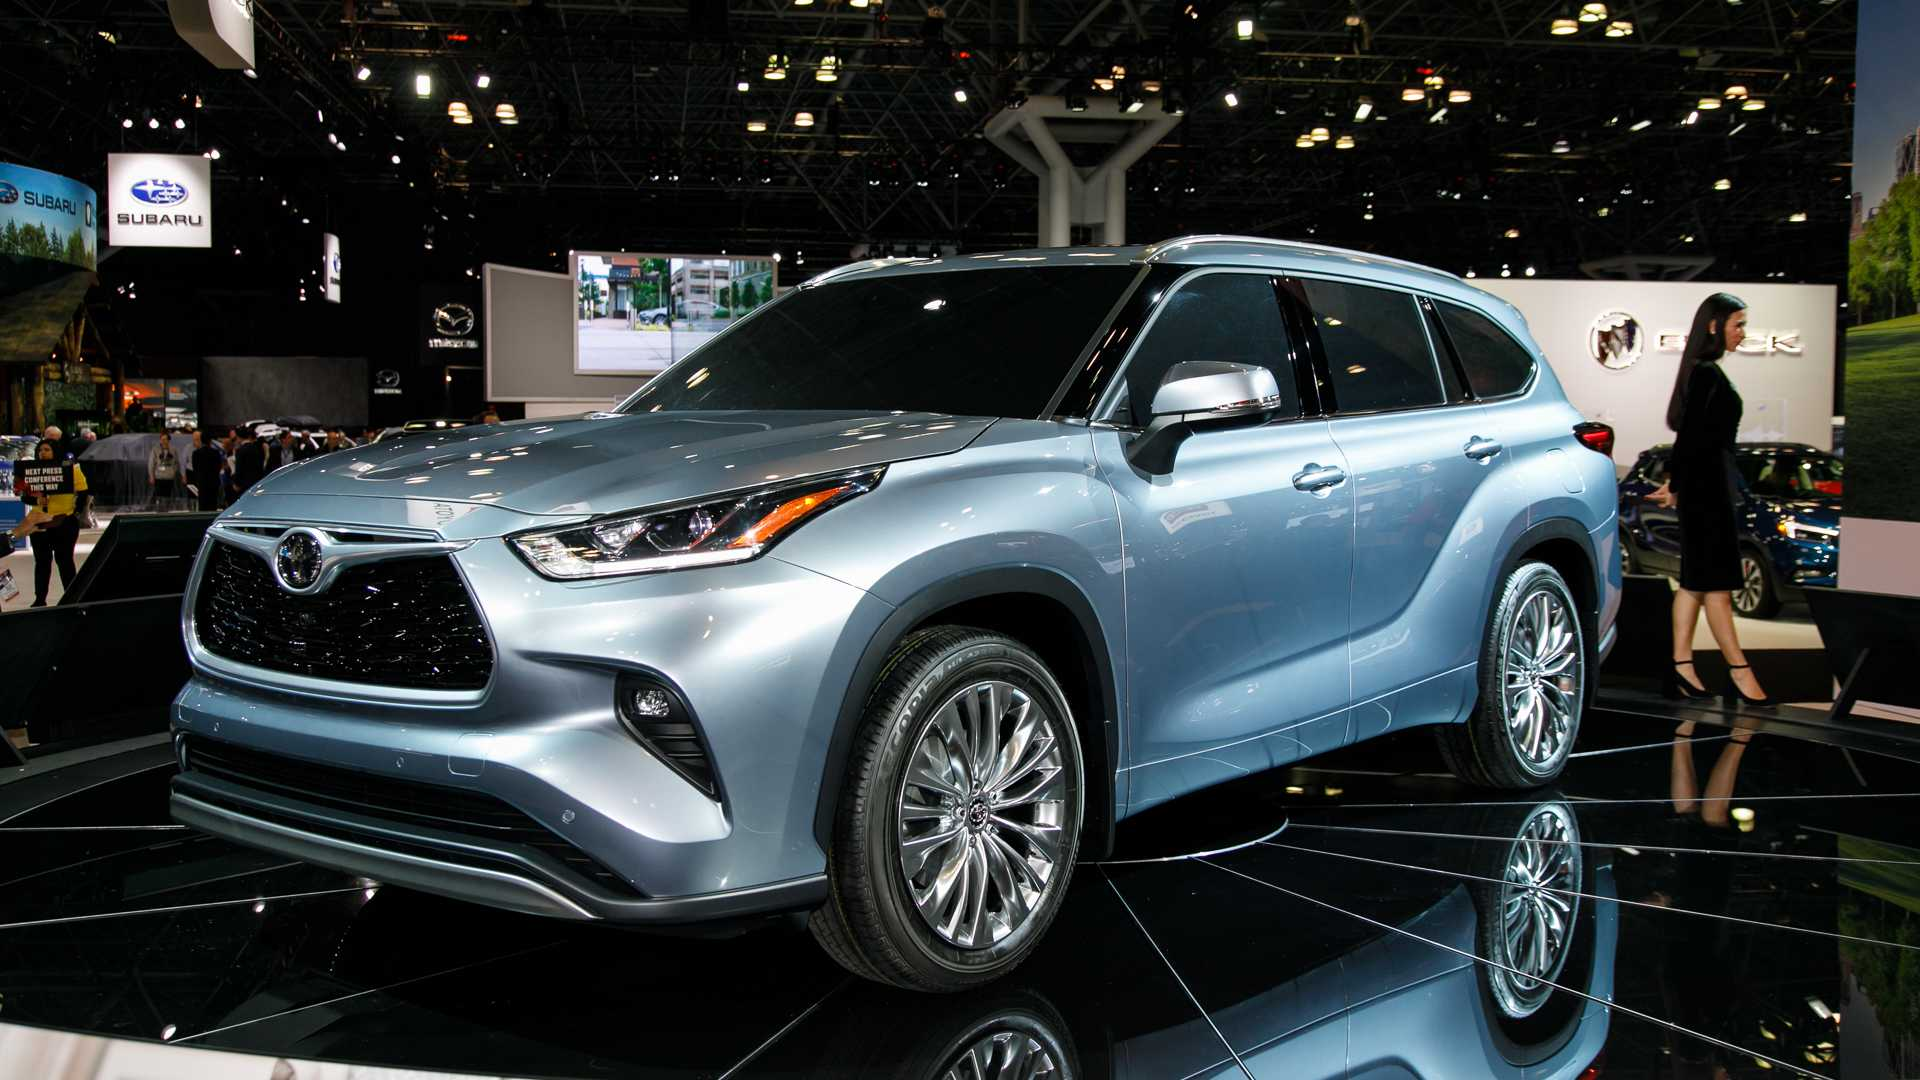 95 New Toyota Kluger 2020 Australia Release Date Model for Toyota Kluger 2020 Australia Release Date